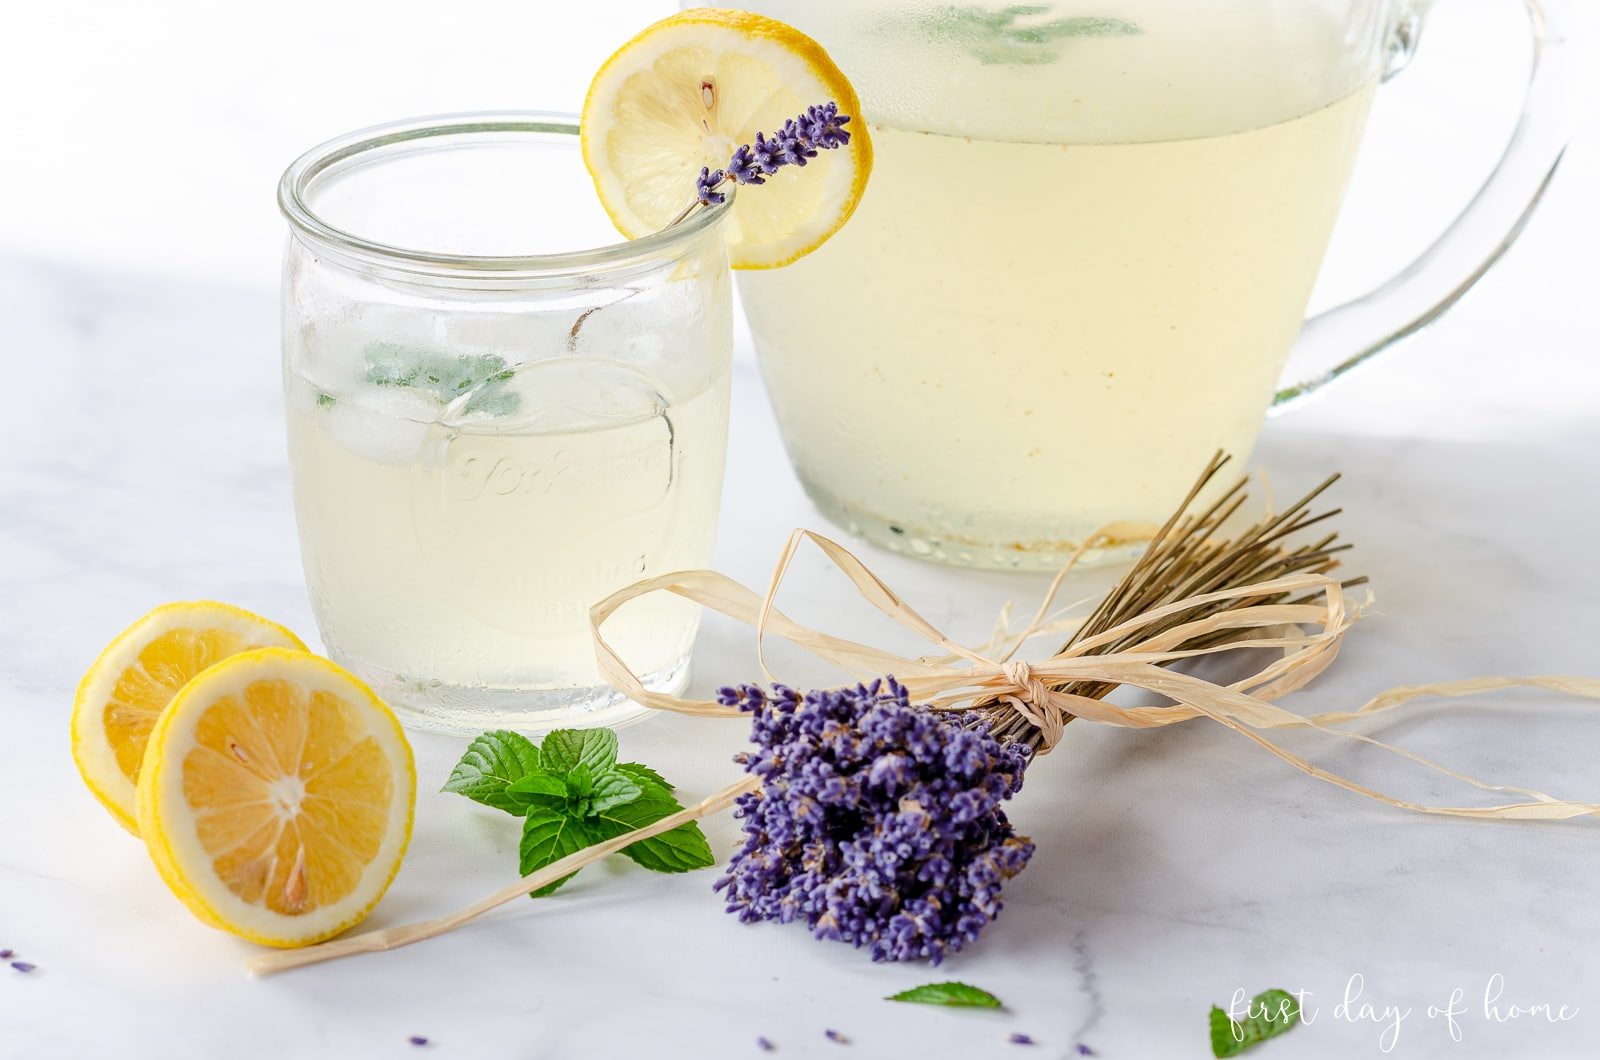 Lavender lemonade recipe with dried lavender buds, fresh lemon and mint